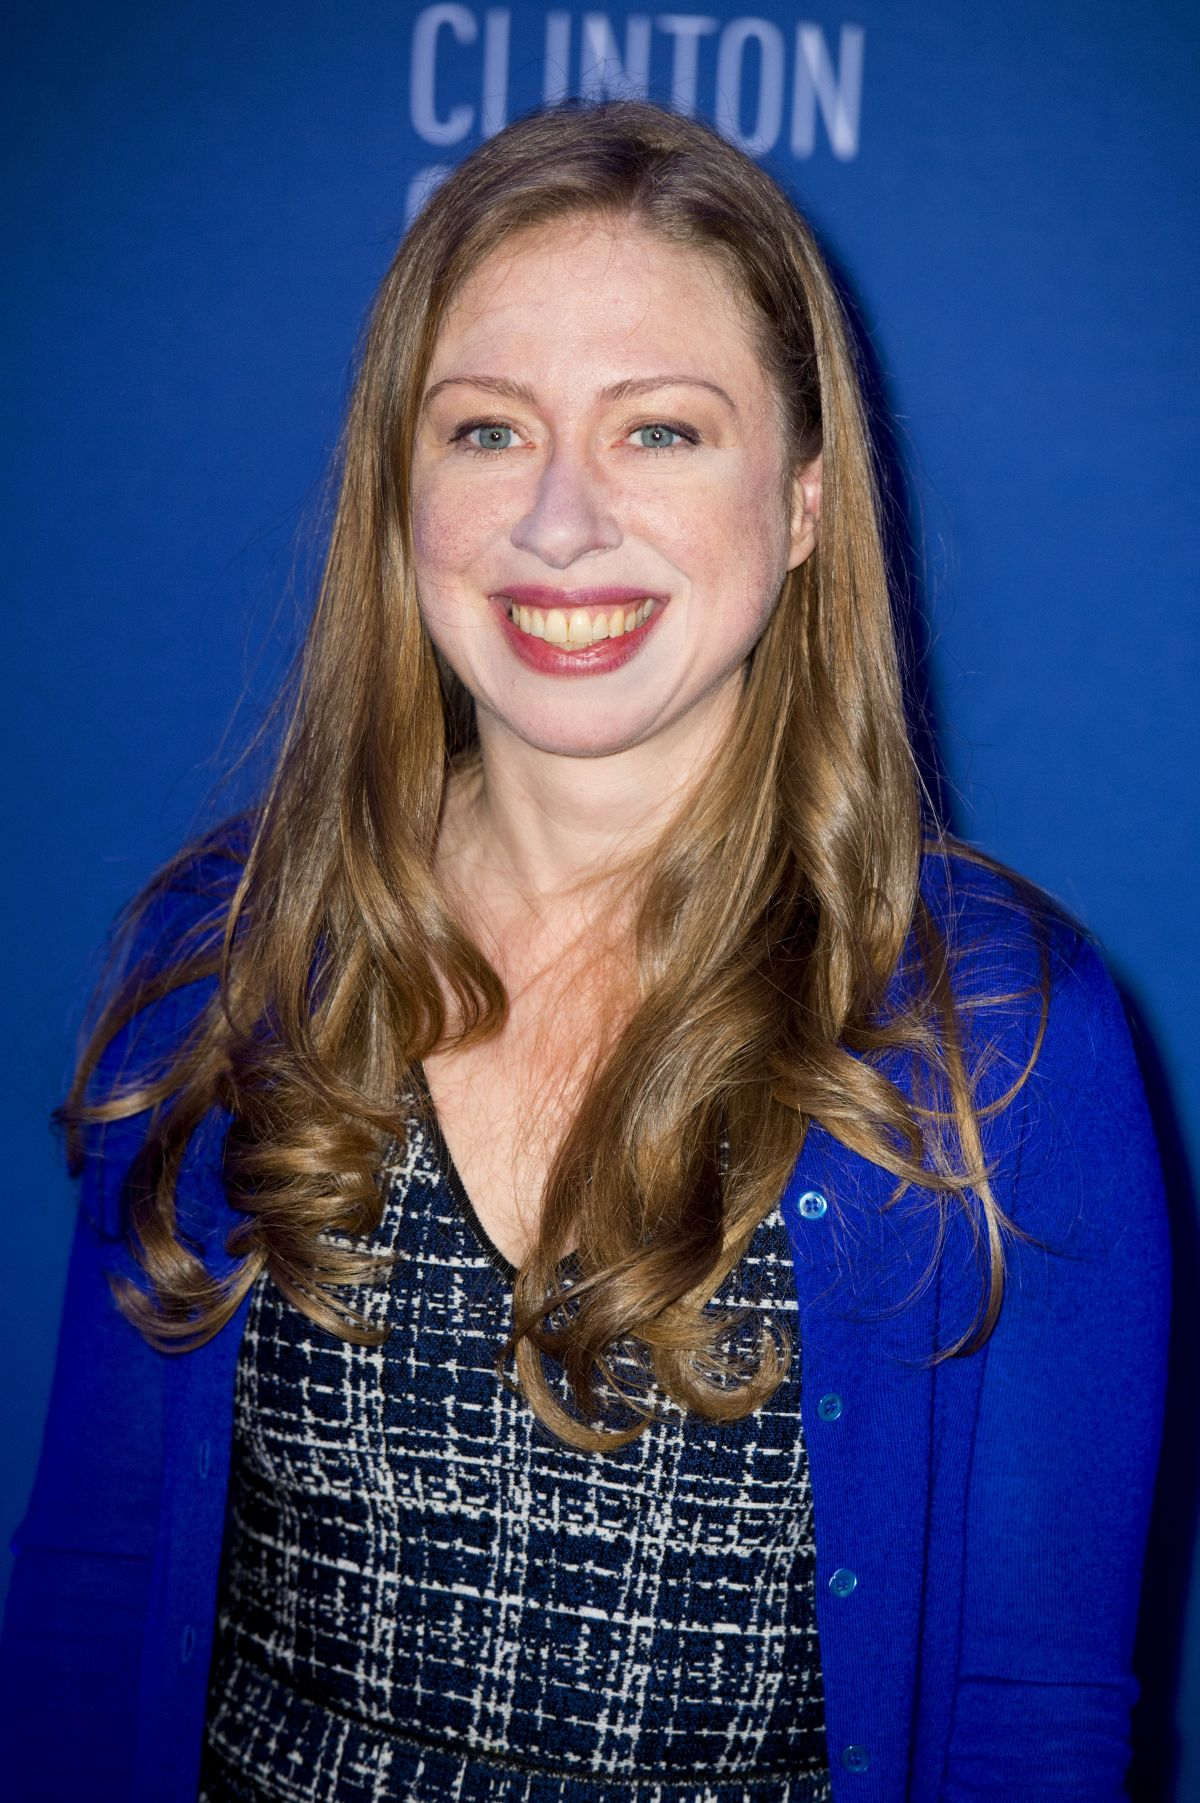 CHELSEA CLINTON at Clinton Global Initiative 2015 Global Citizen Awards in New York 09/27/2015